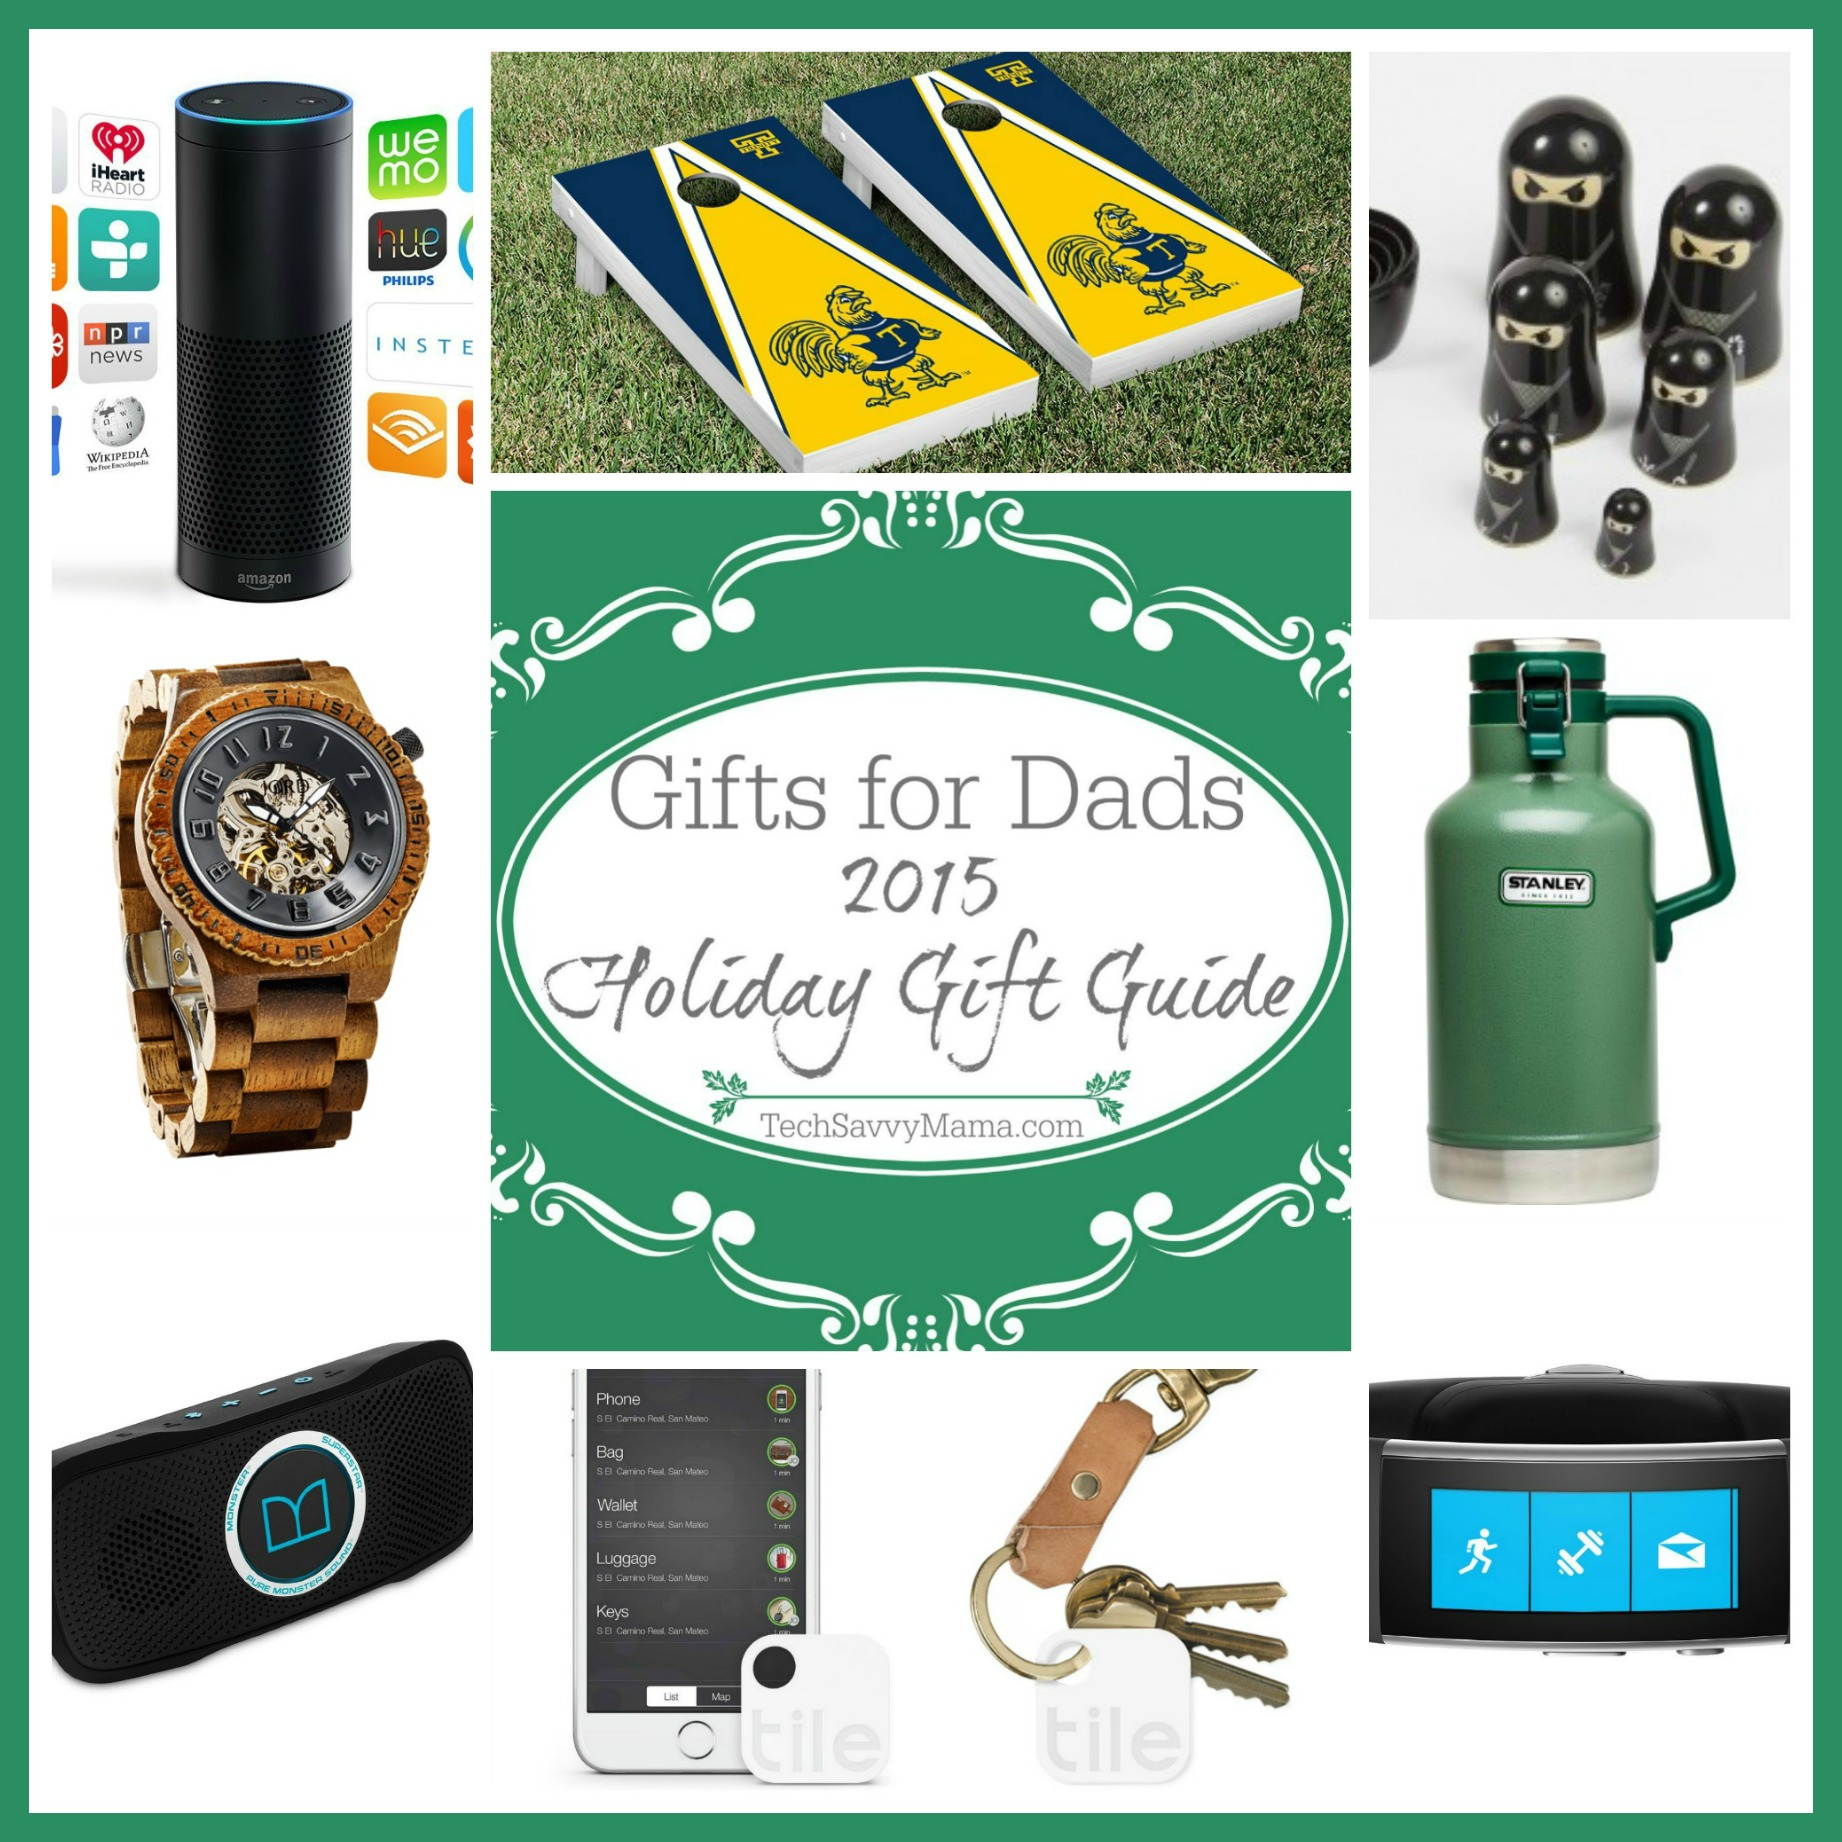 2015 Gift Guide: Gifts for Dads